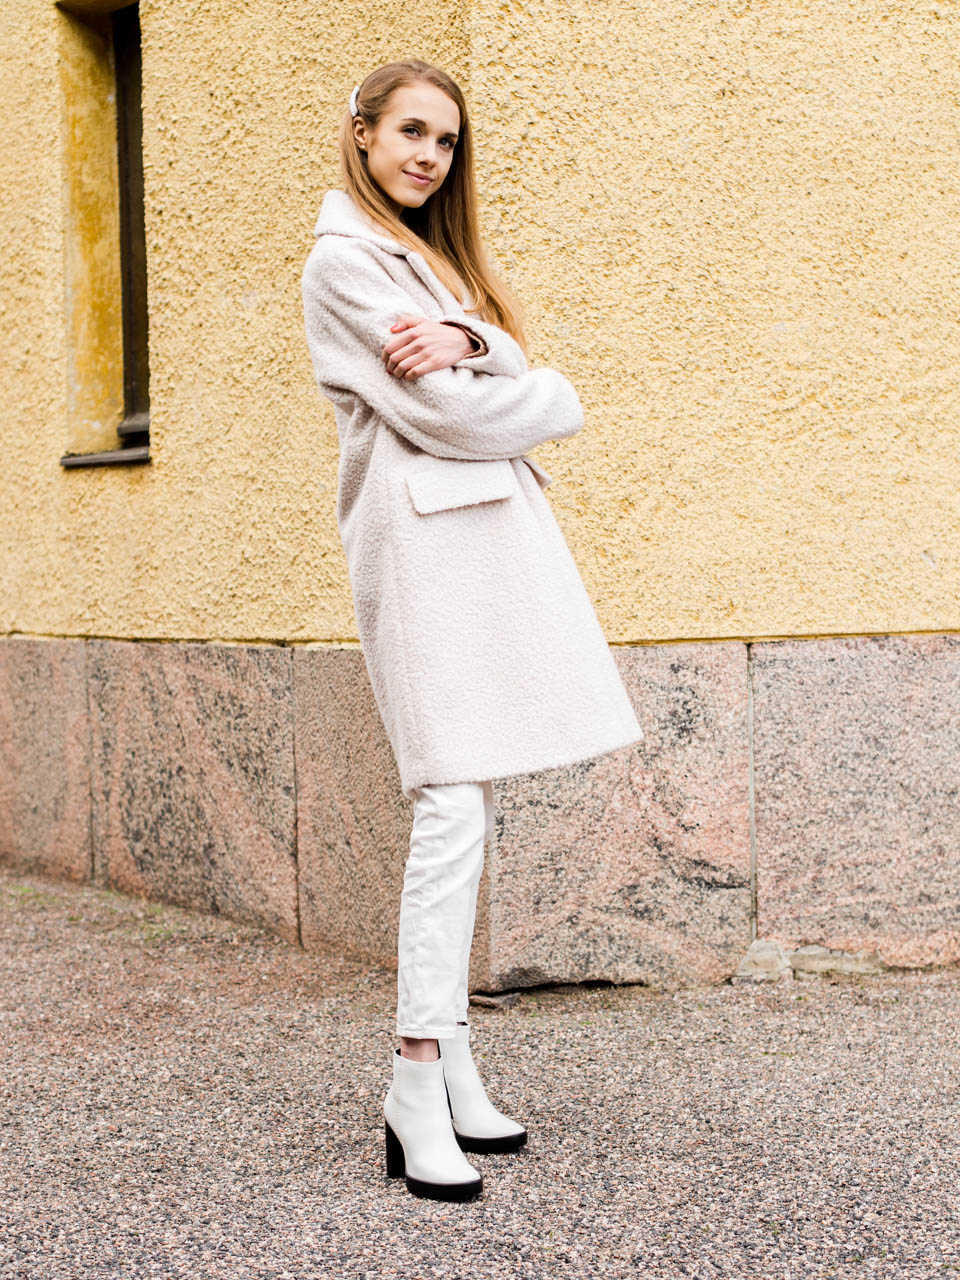 Coats for Autumn and Winter 2019 - Takit syksy ja talvi 2019